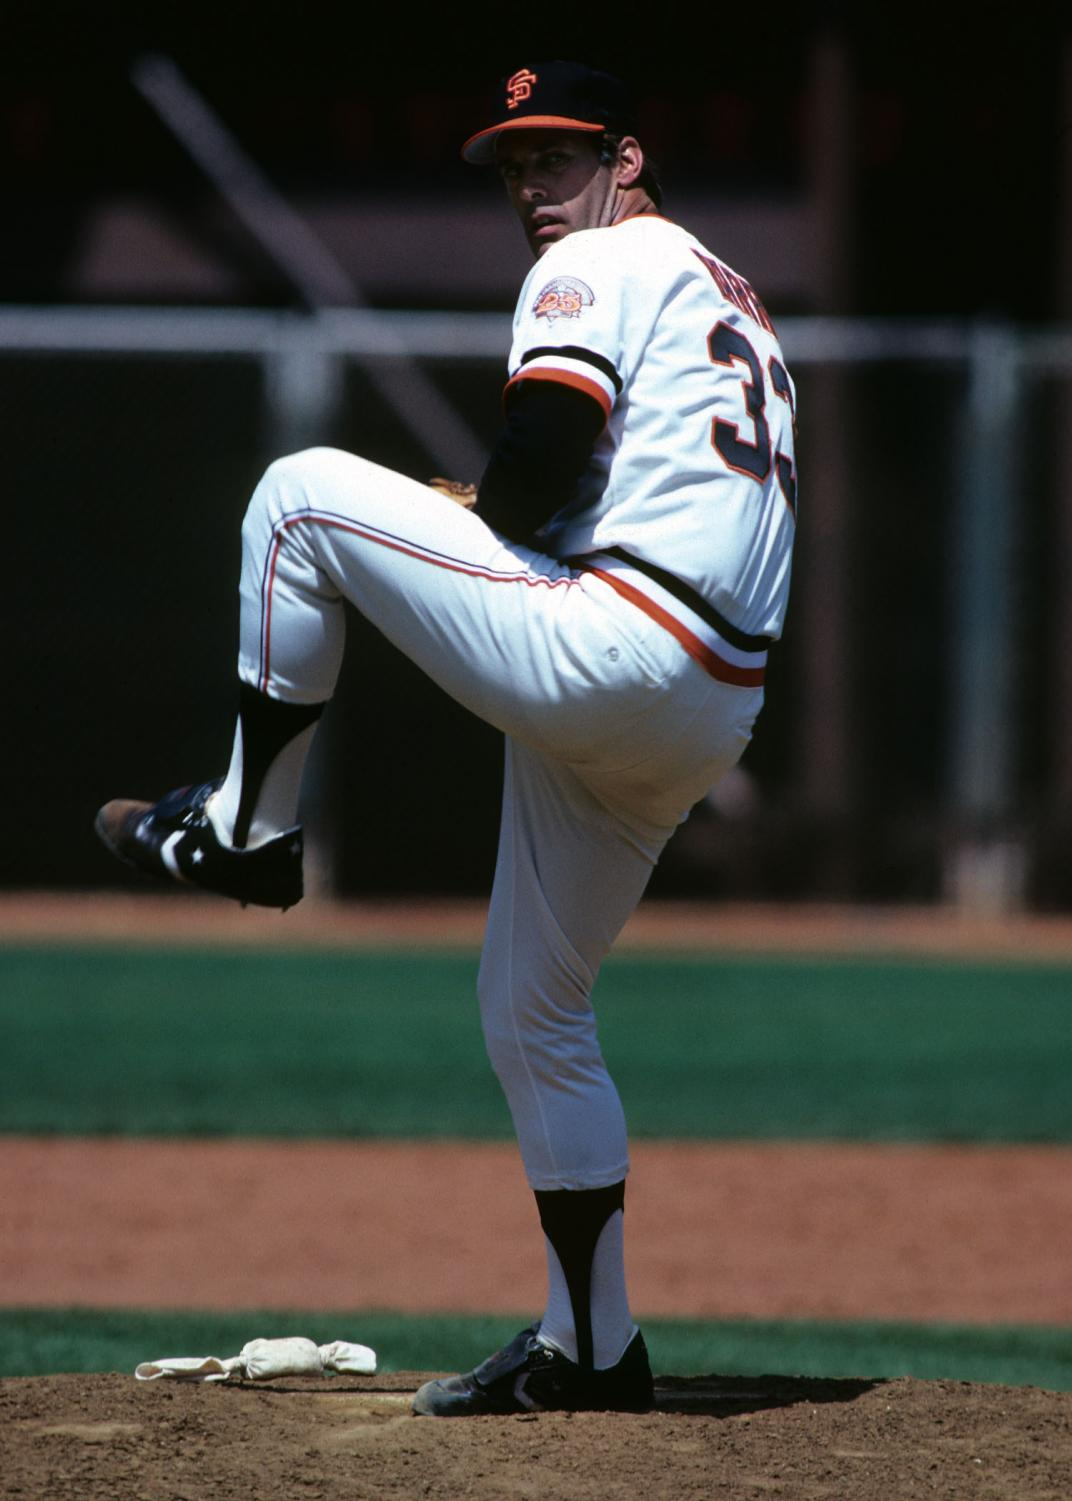 Jim Barr pitched for the San Francisco Giants and the Los Angeles Angels of Anaheim during his long career in Major League Baseball.